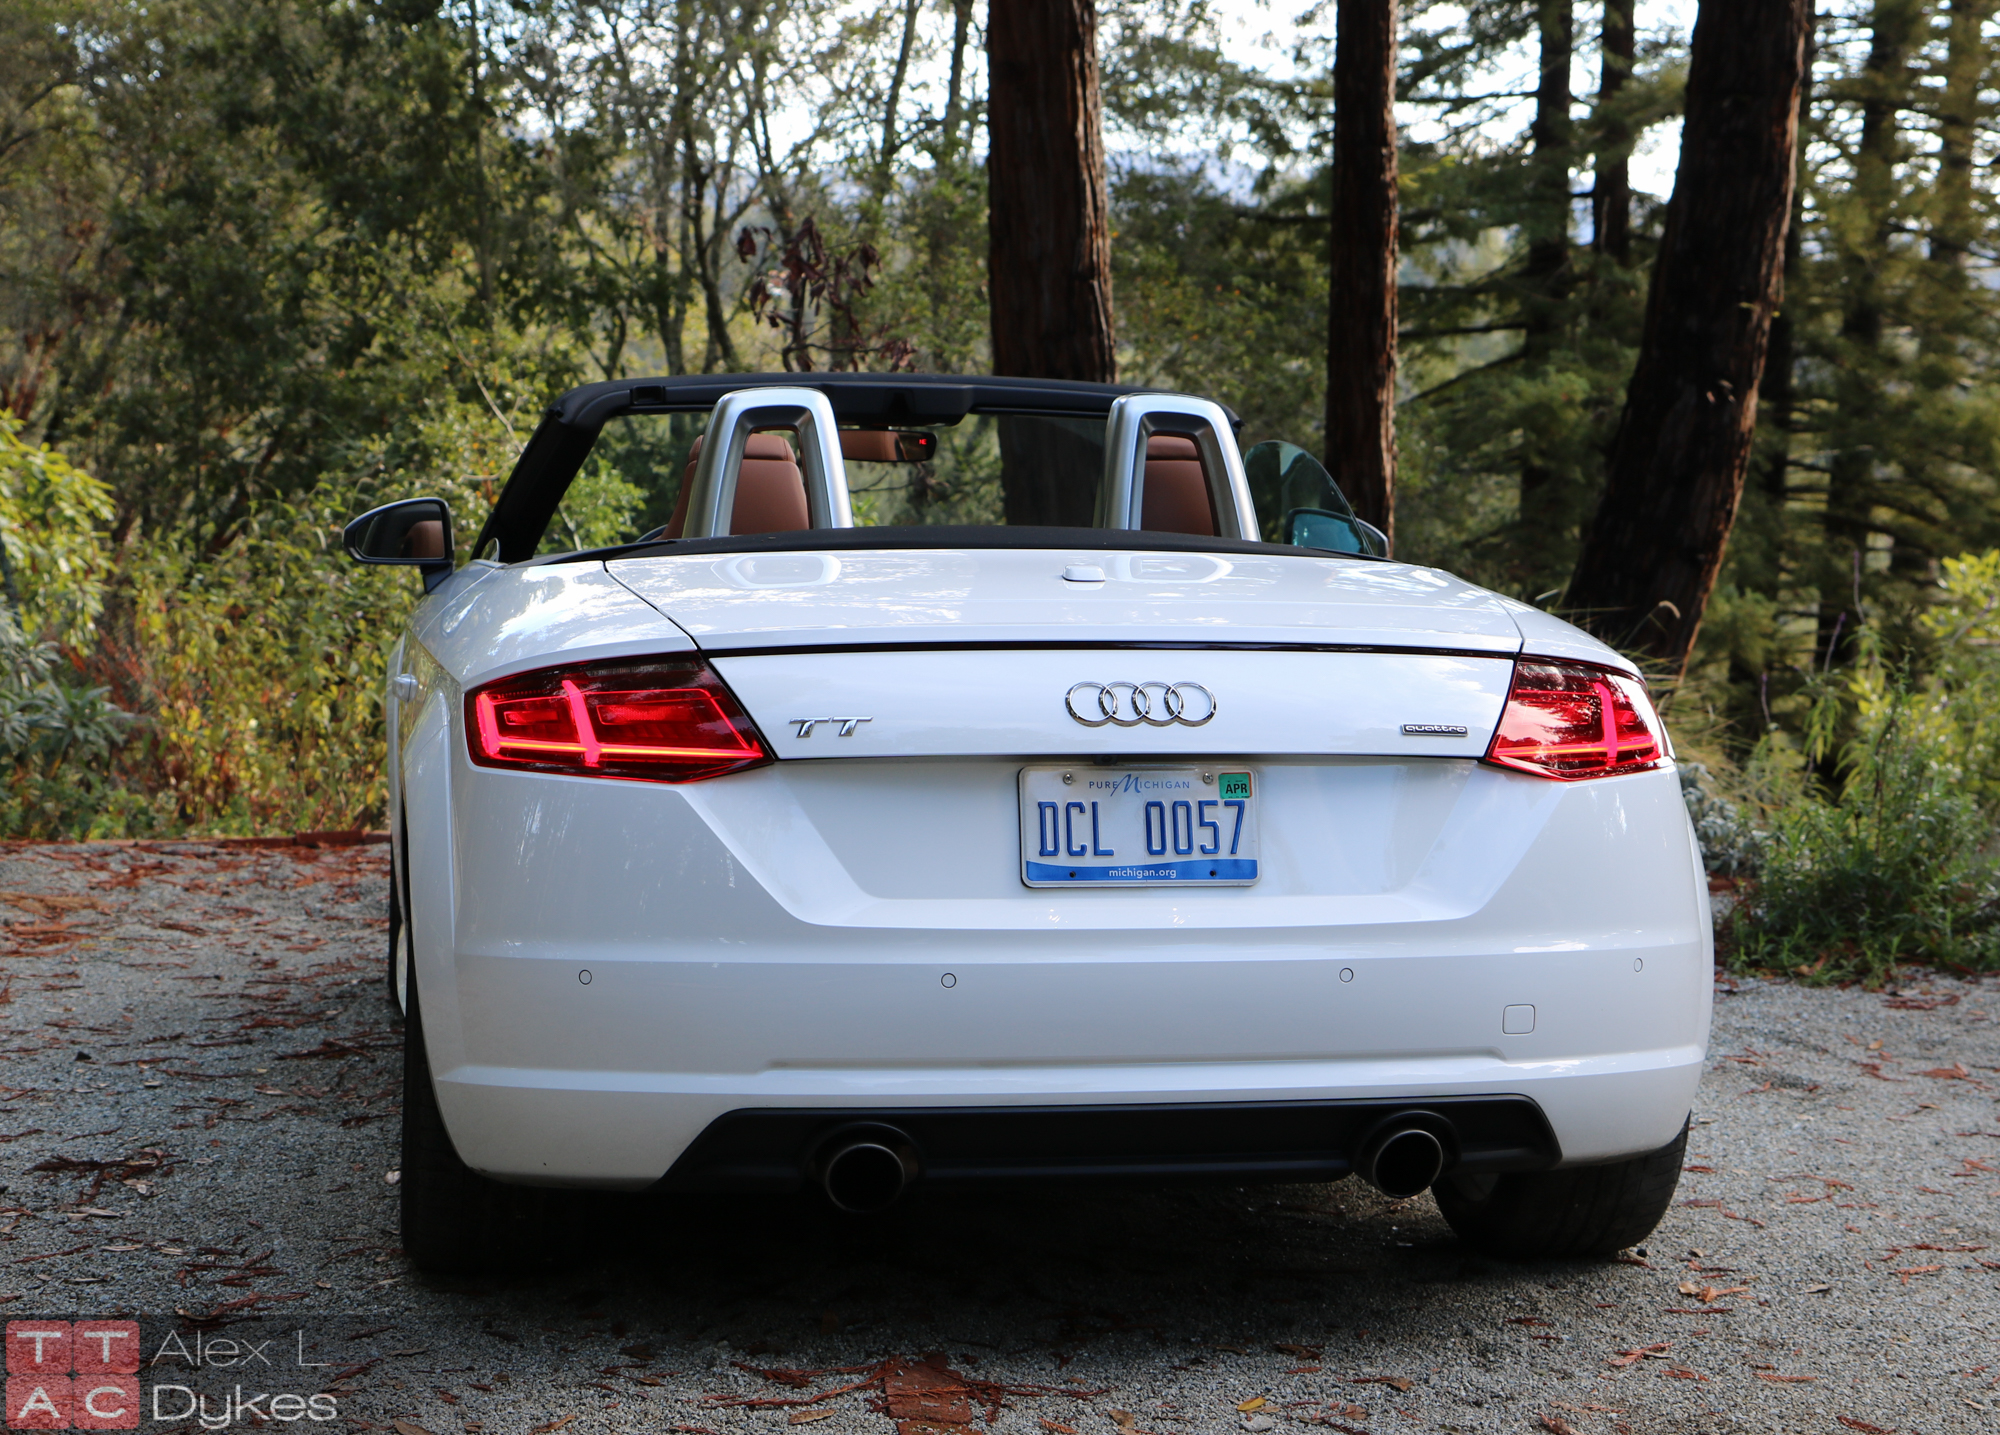 2016 audi tt roadster exterior 007 the truth about cars. Black Bedroom Furniture Sets. Home Design Ideas